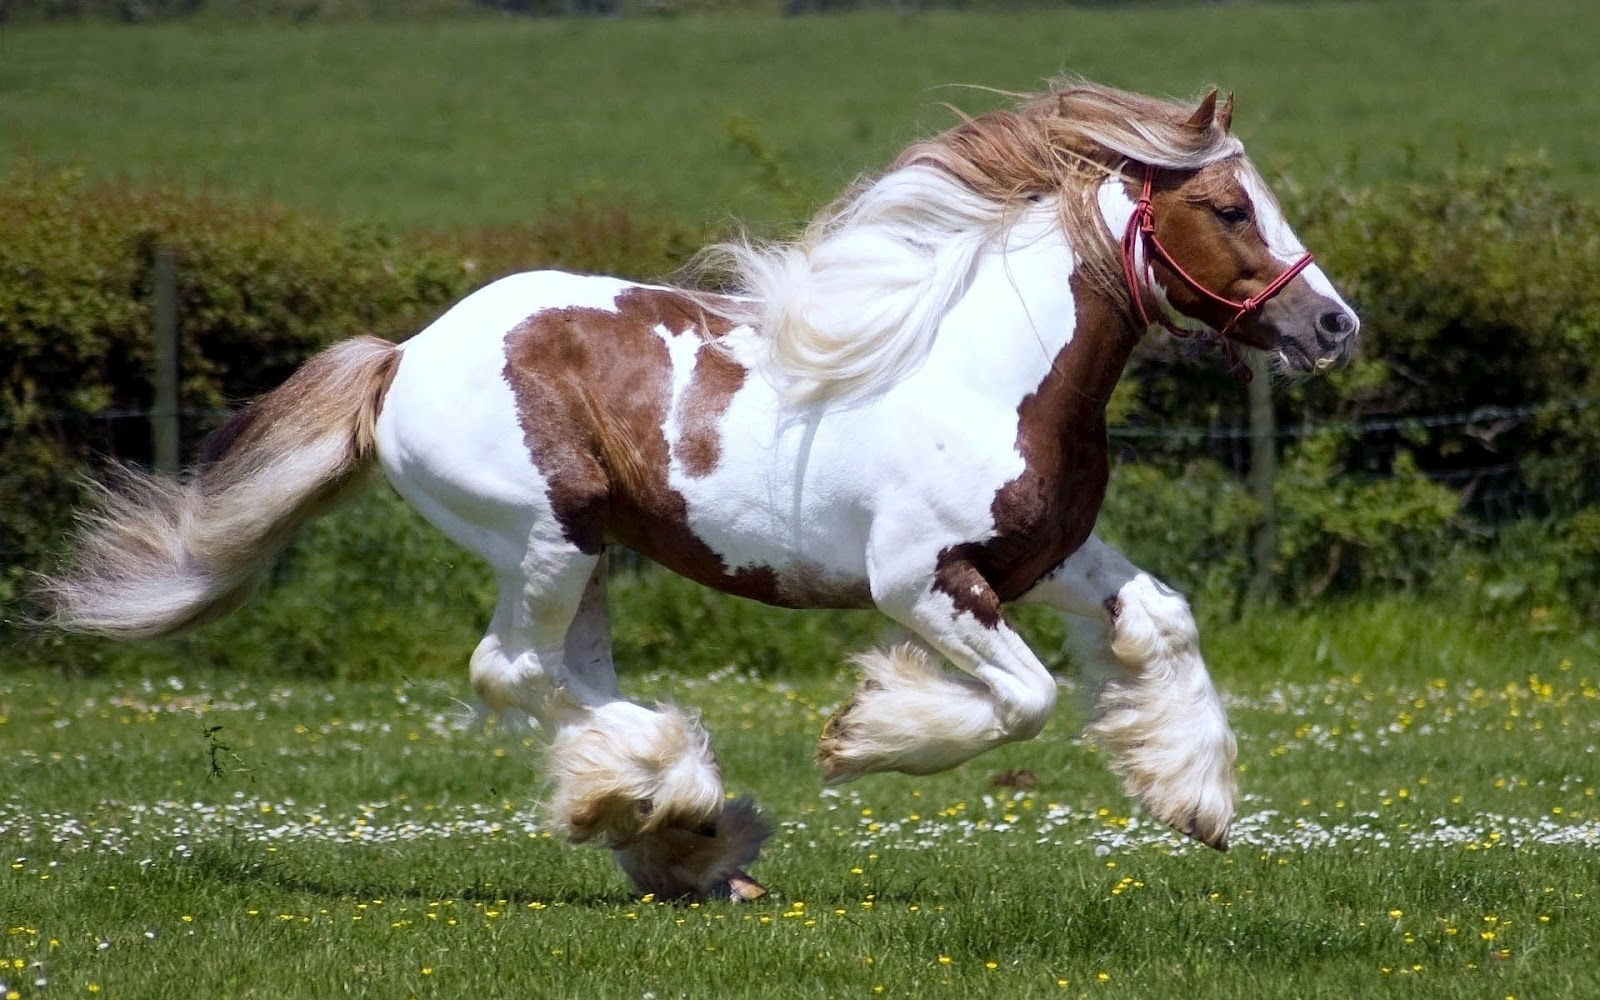 White running horses - photo#19